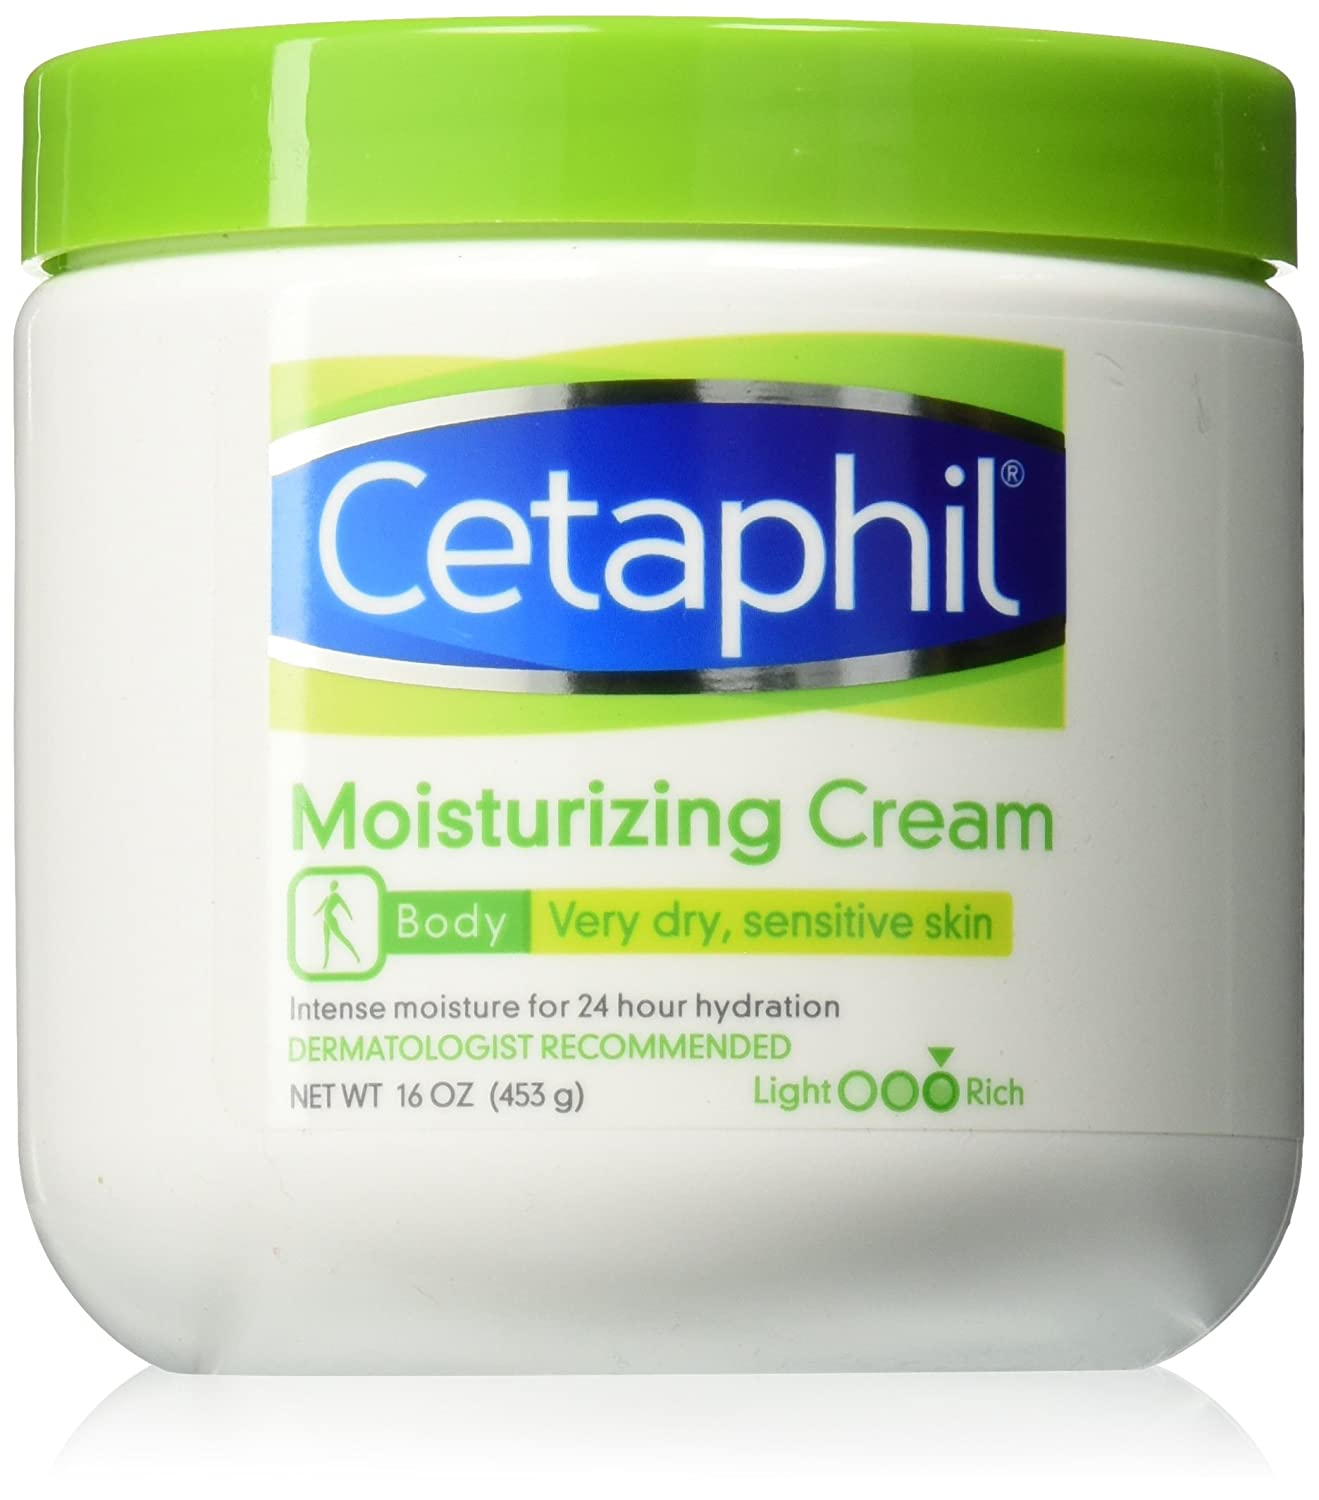 Cetaphil Moisturizing Cream for Very Dry/Sensitive Skin, Fragrance Free, 16 Ounce